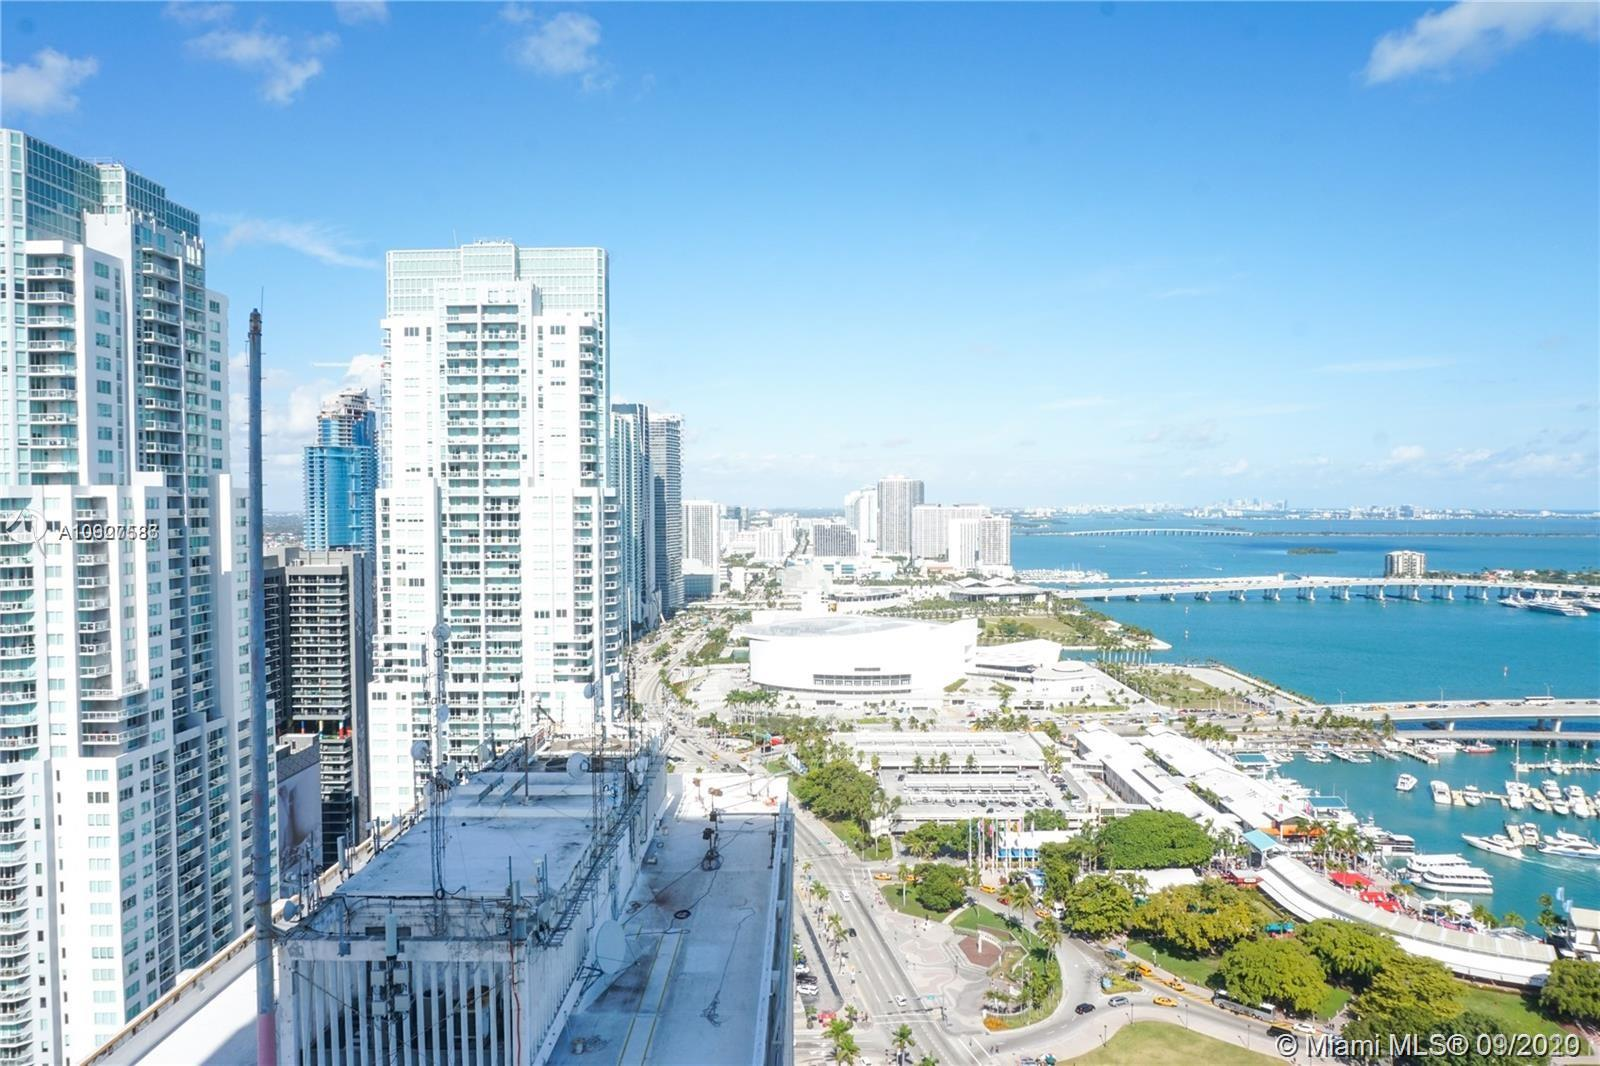 Best priced corner 3/2 with wrap around balcony in Downtown Miami. Unobstructed views to the North, East, and South. Largest unit line in the building. 3rd bedroom can be used as an office or bedroom as there is a walk in closet and bathroom. All bedrooms have access to balcony as well as three access points in the living room. The washer/dryer and ac unit are hidden in utility closet. Apartment comes partially furnished with beds, living room, and dining room. All this unit needs is a little personal touch and the right tenant! easy to show, call listing agent